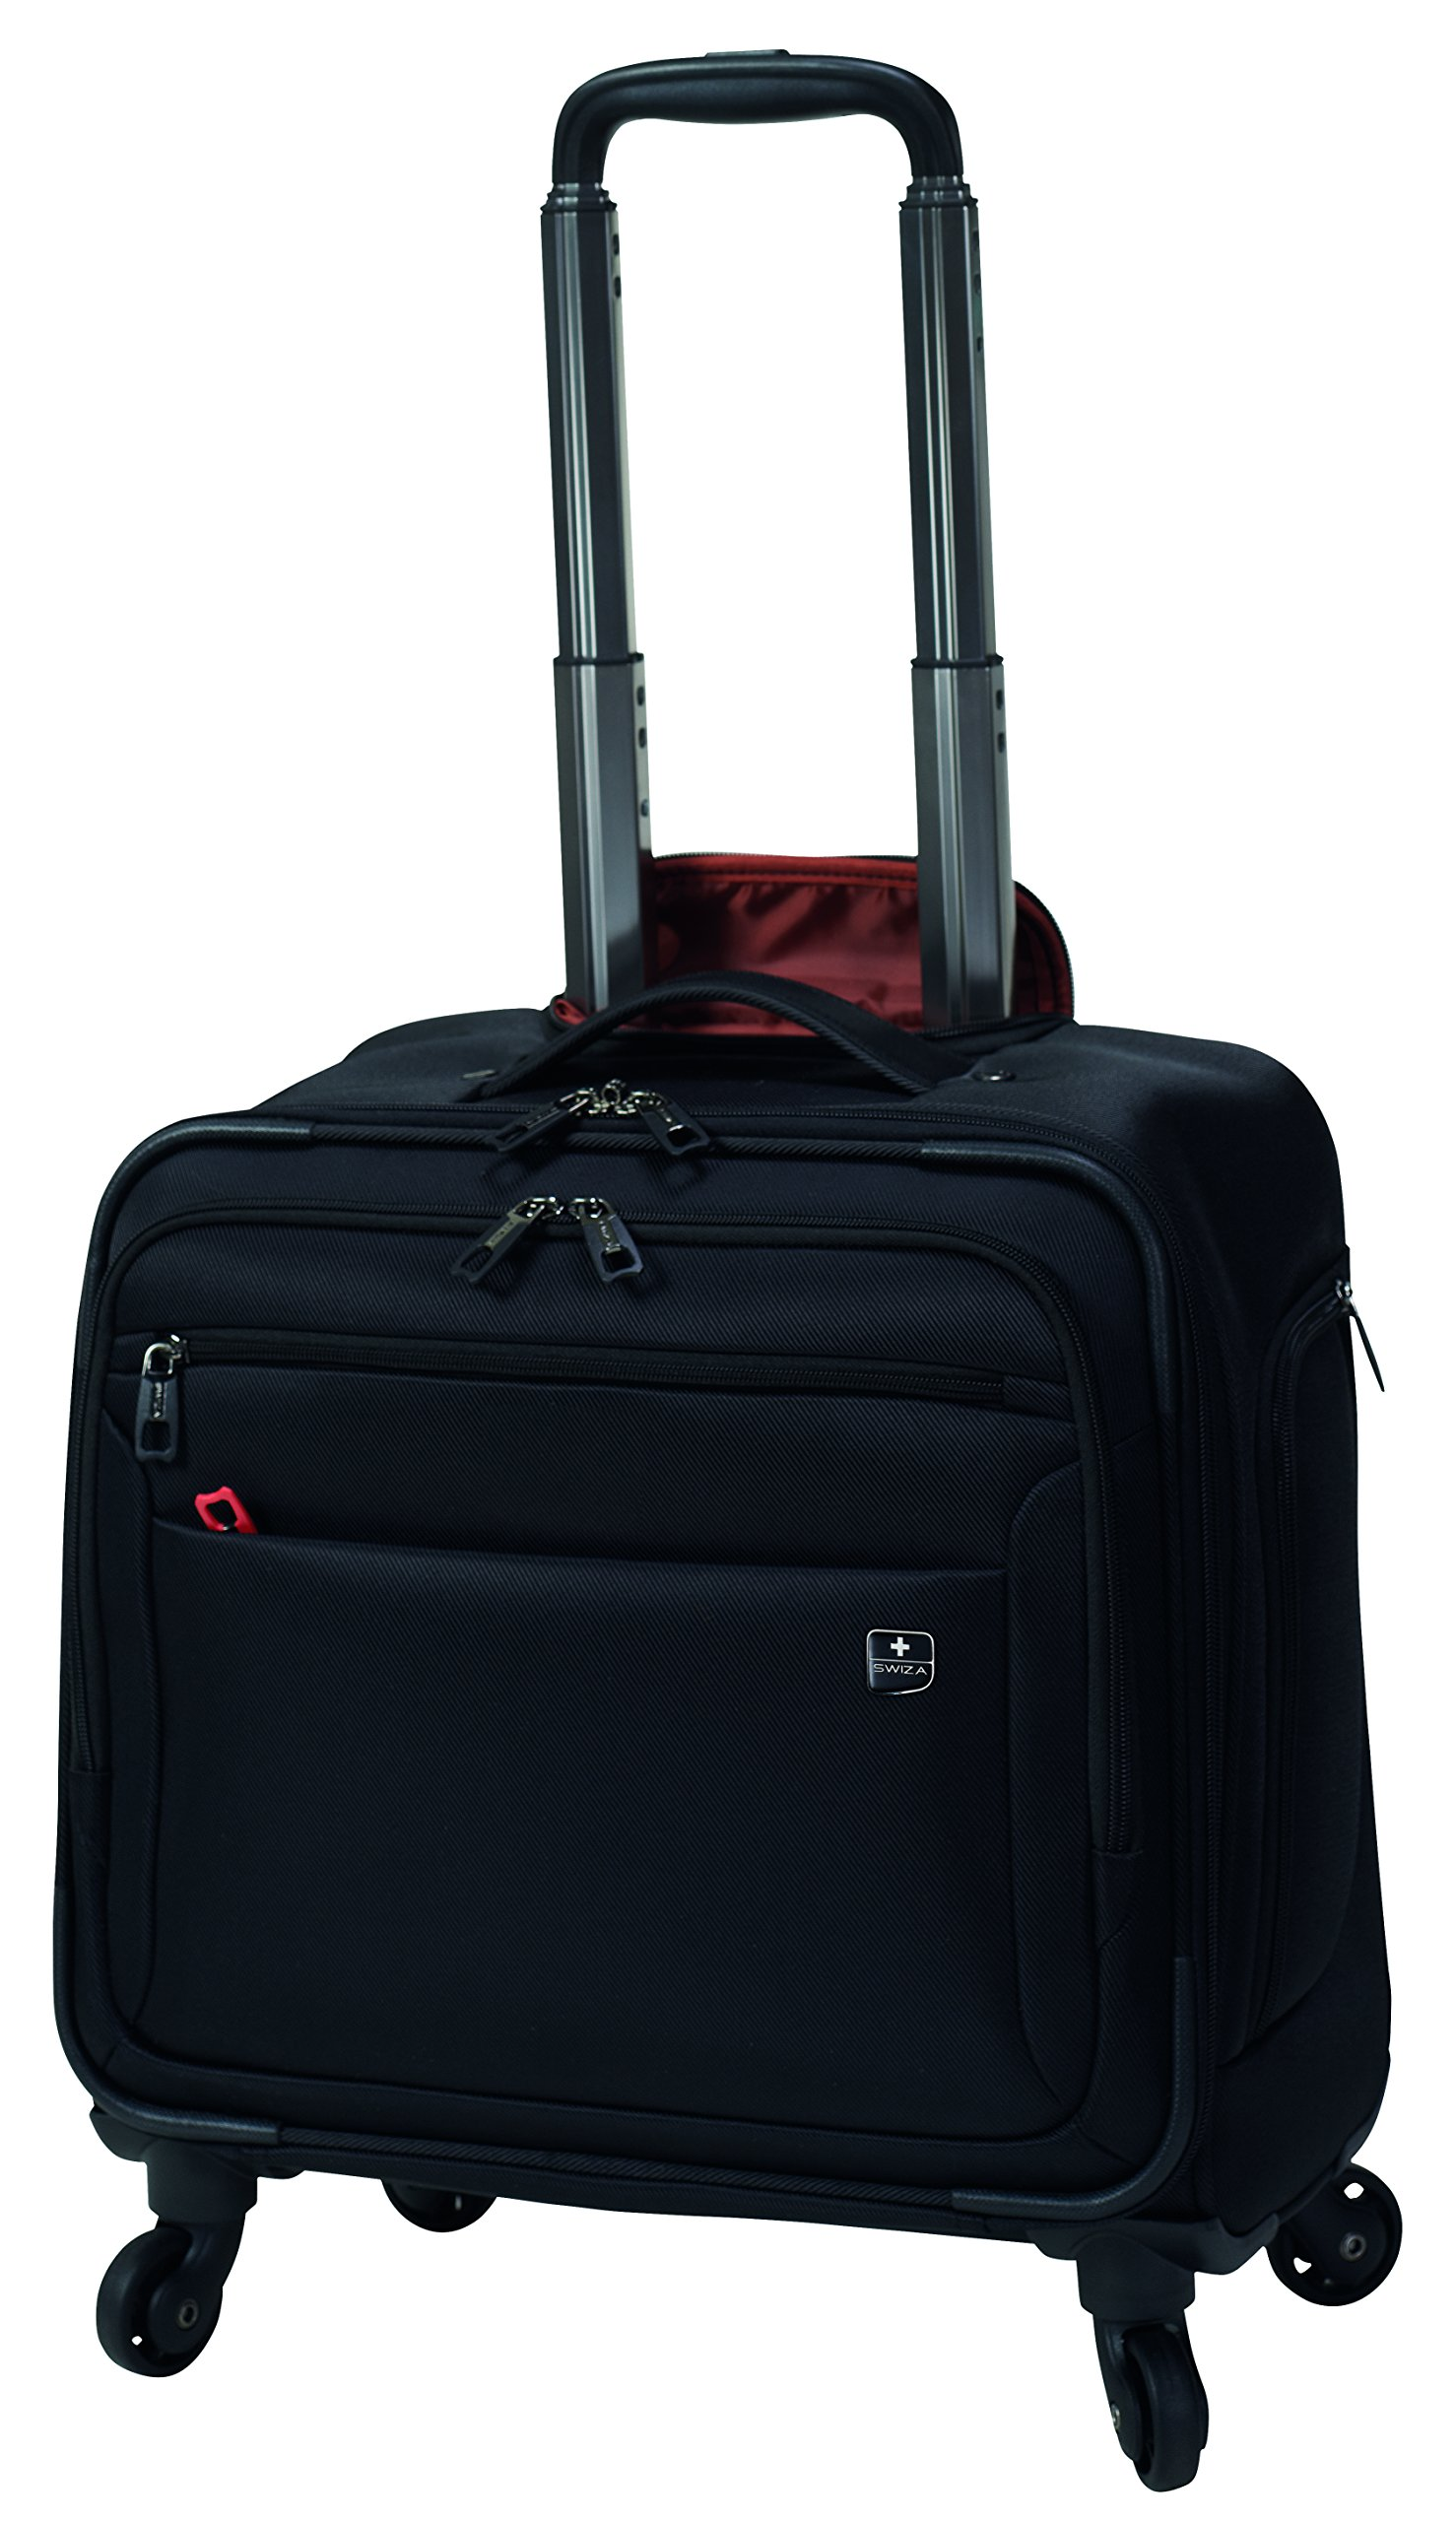 SWIZA Cassus Compact Overnight Business or Weekend Soft-Sided Spinner Luggage - Black by Swiza